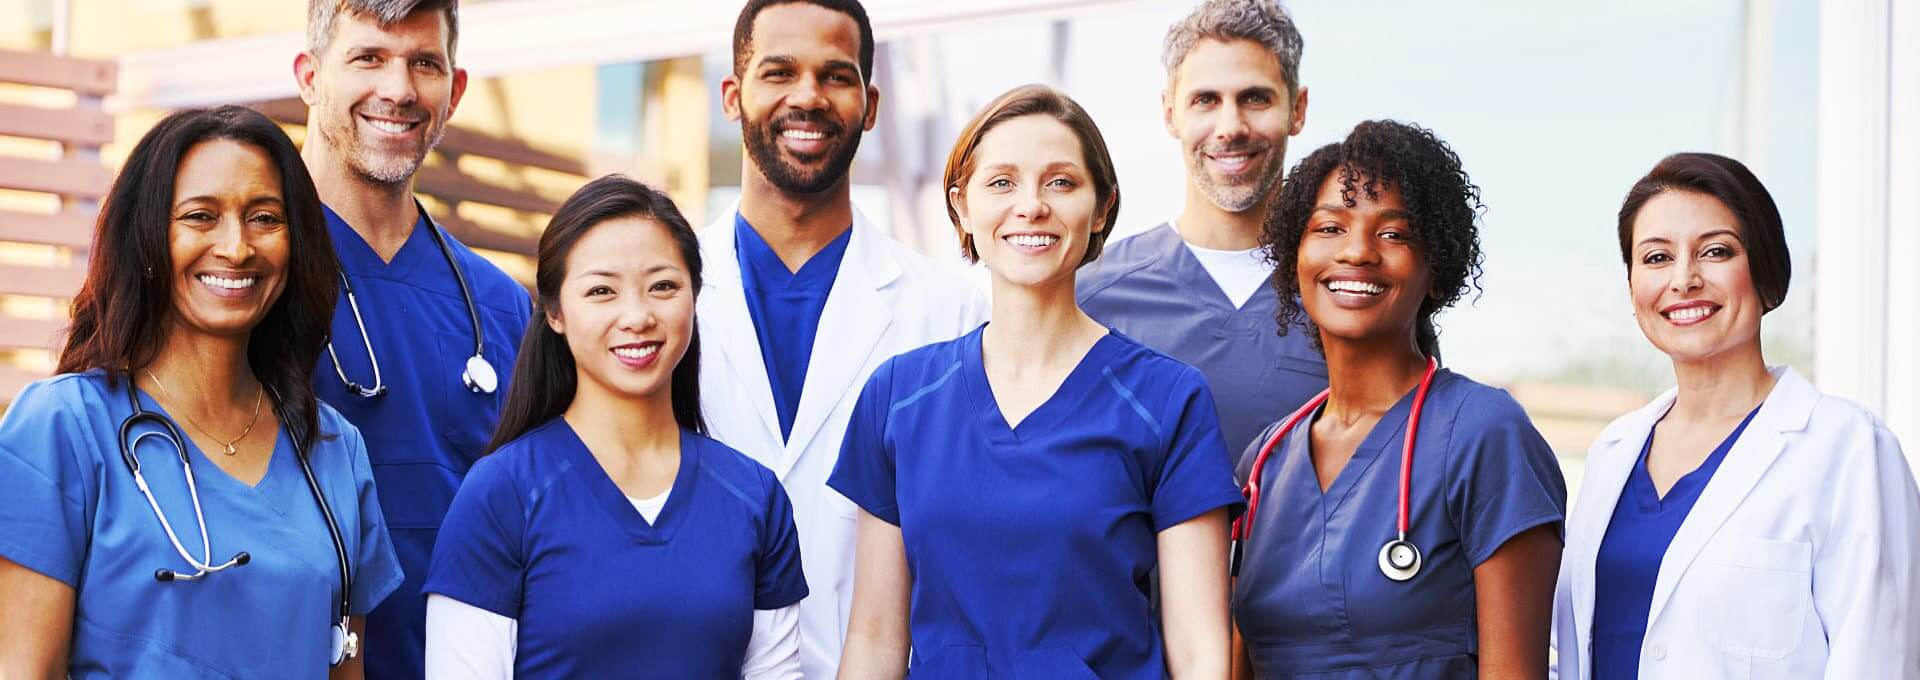 happy medical personnel